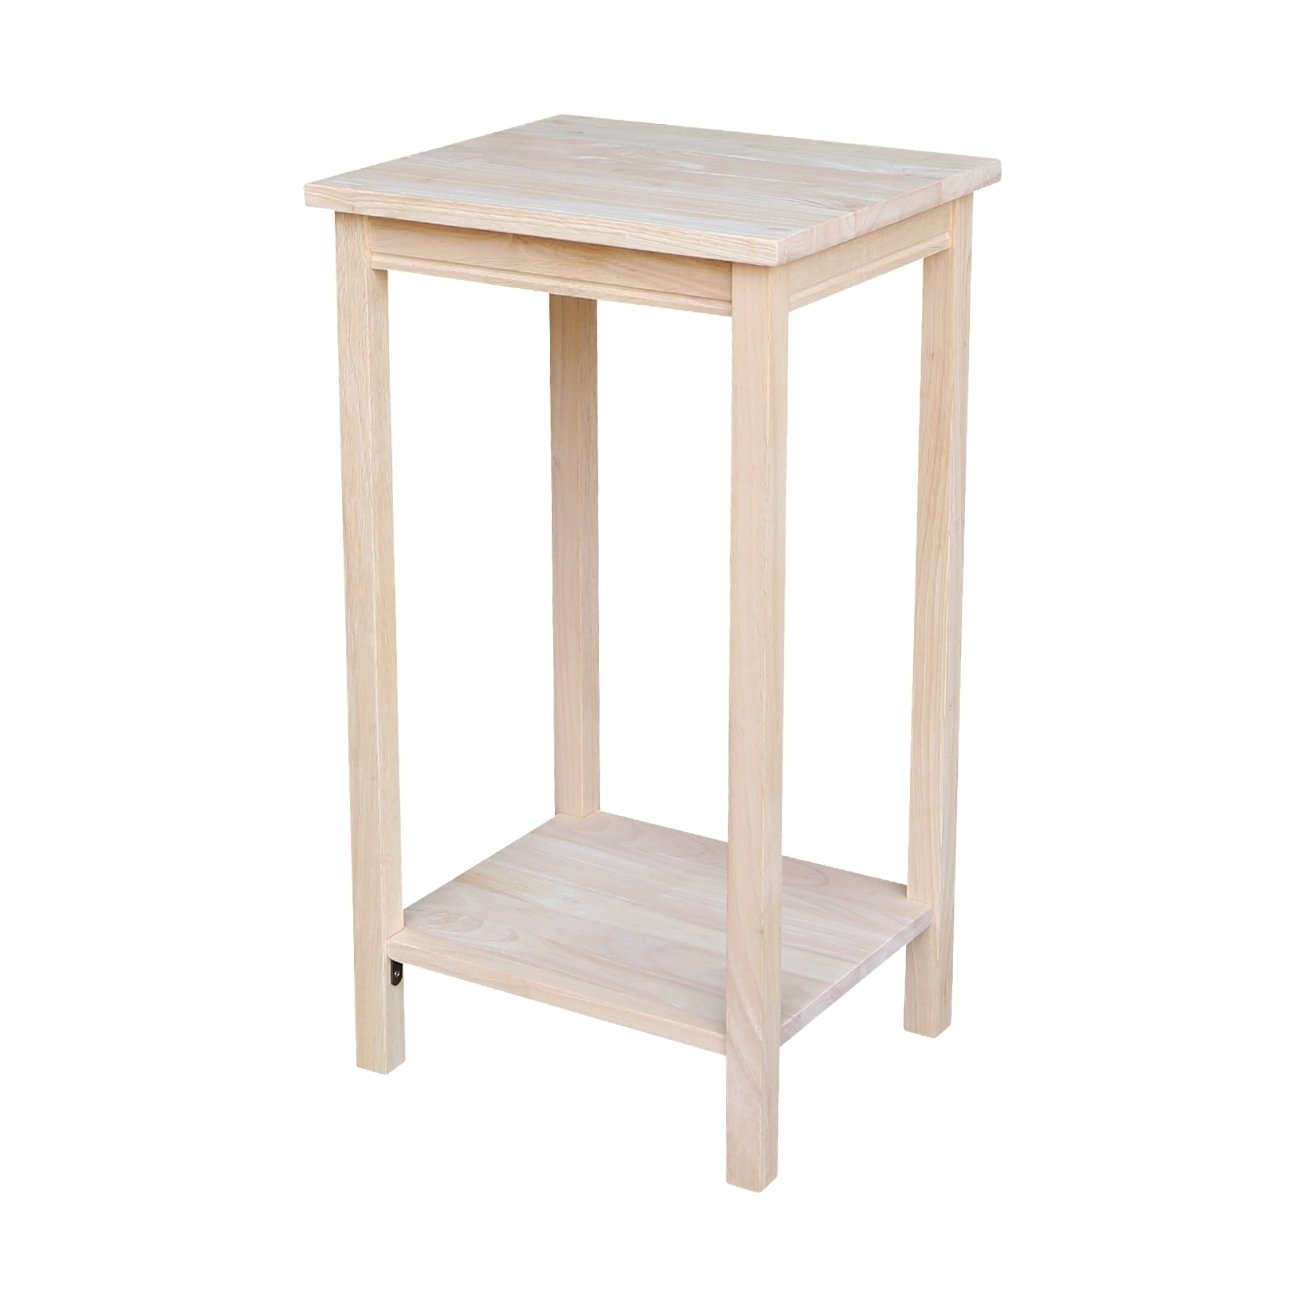 the gray barn moonshine unfinished accent table free shipping solid parawood portman today target patio mission end hourglass spring tablecloth dinner napkins small round wood